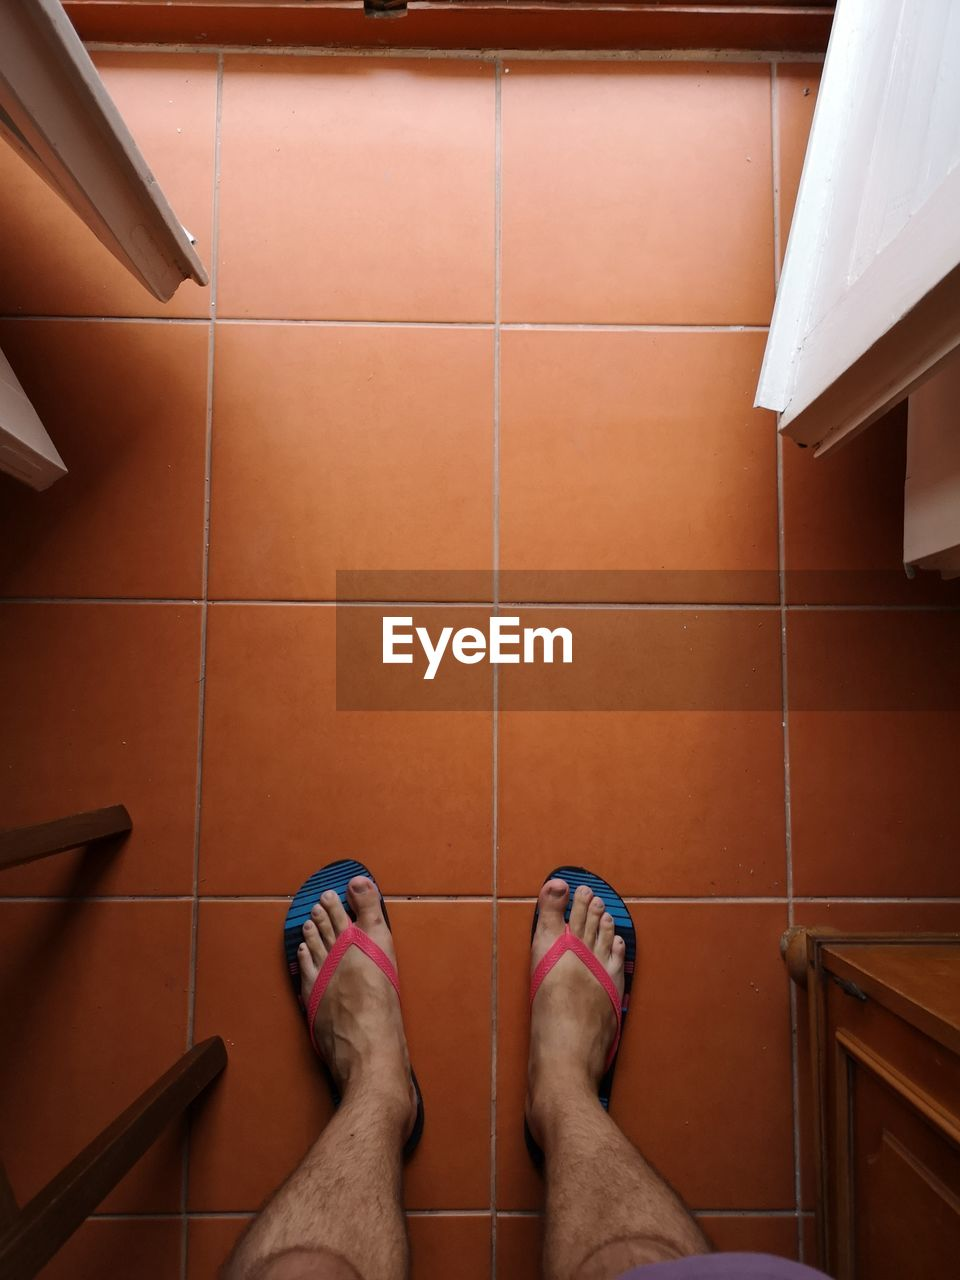 low section, flooring, human leg, tile, body part, one person, human body part, indoors, personal perspective, shoe, real people, human foot, tiled floor, standing, barefoot, high angle view, lifestyles, directly above, bathroom, human limb, jeans